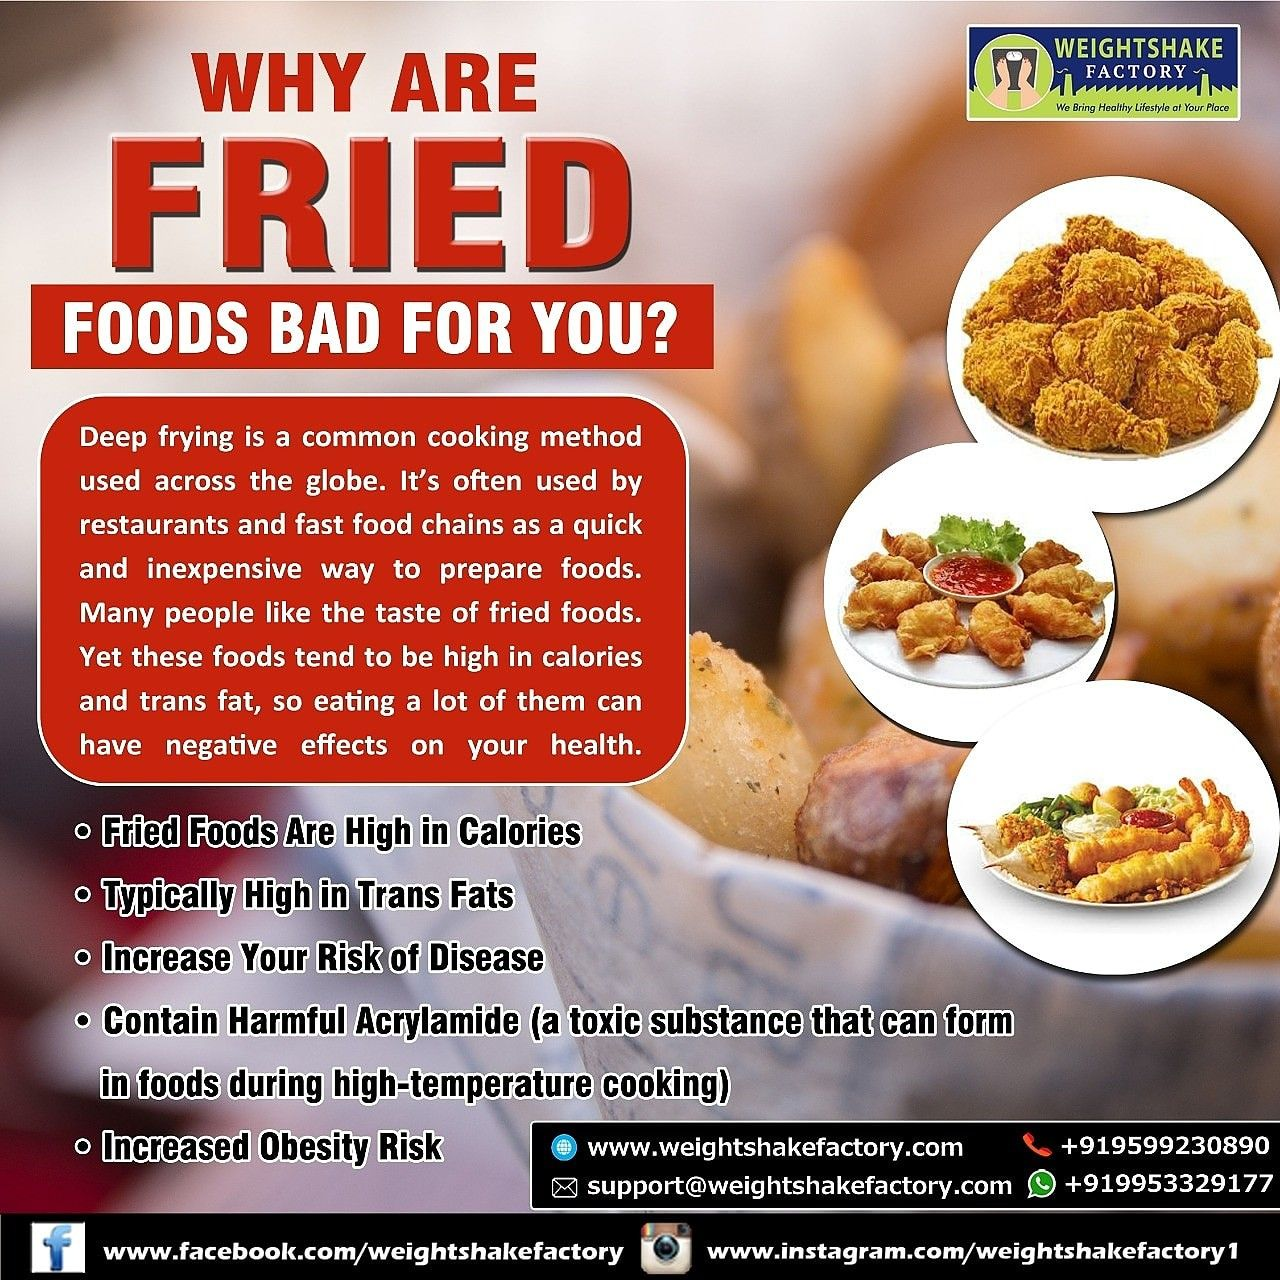 Why are fried foods bad